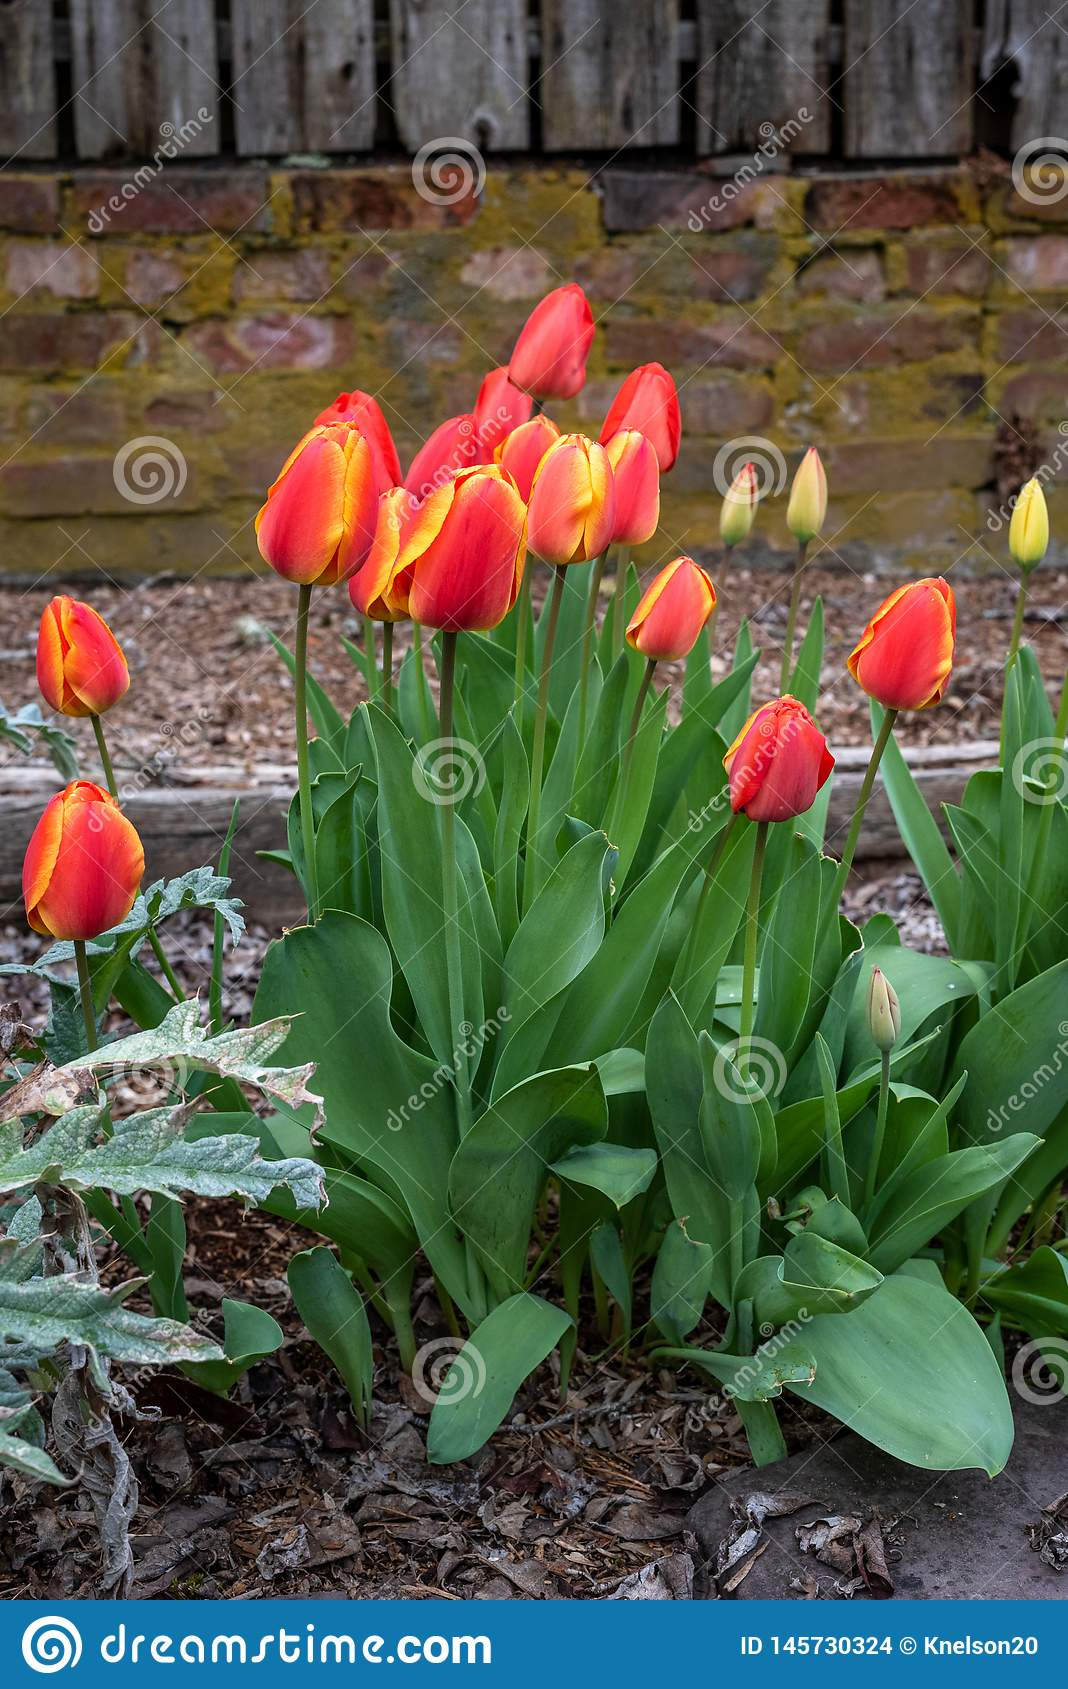 Spring flowers growing in a home garden, yellow tulips and red and yellow tulips, brick wall in the background, springtime in the